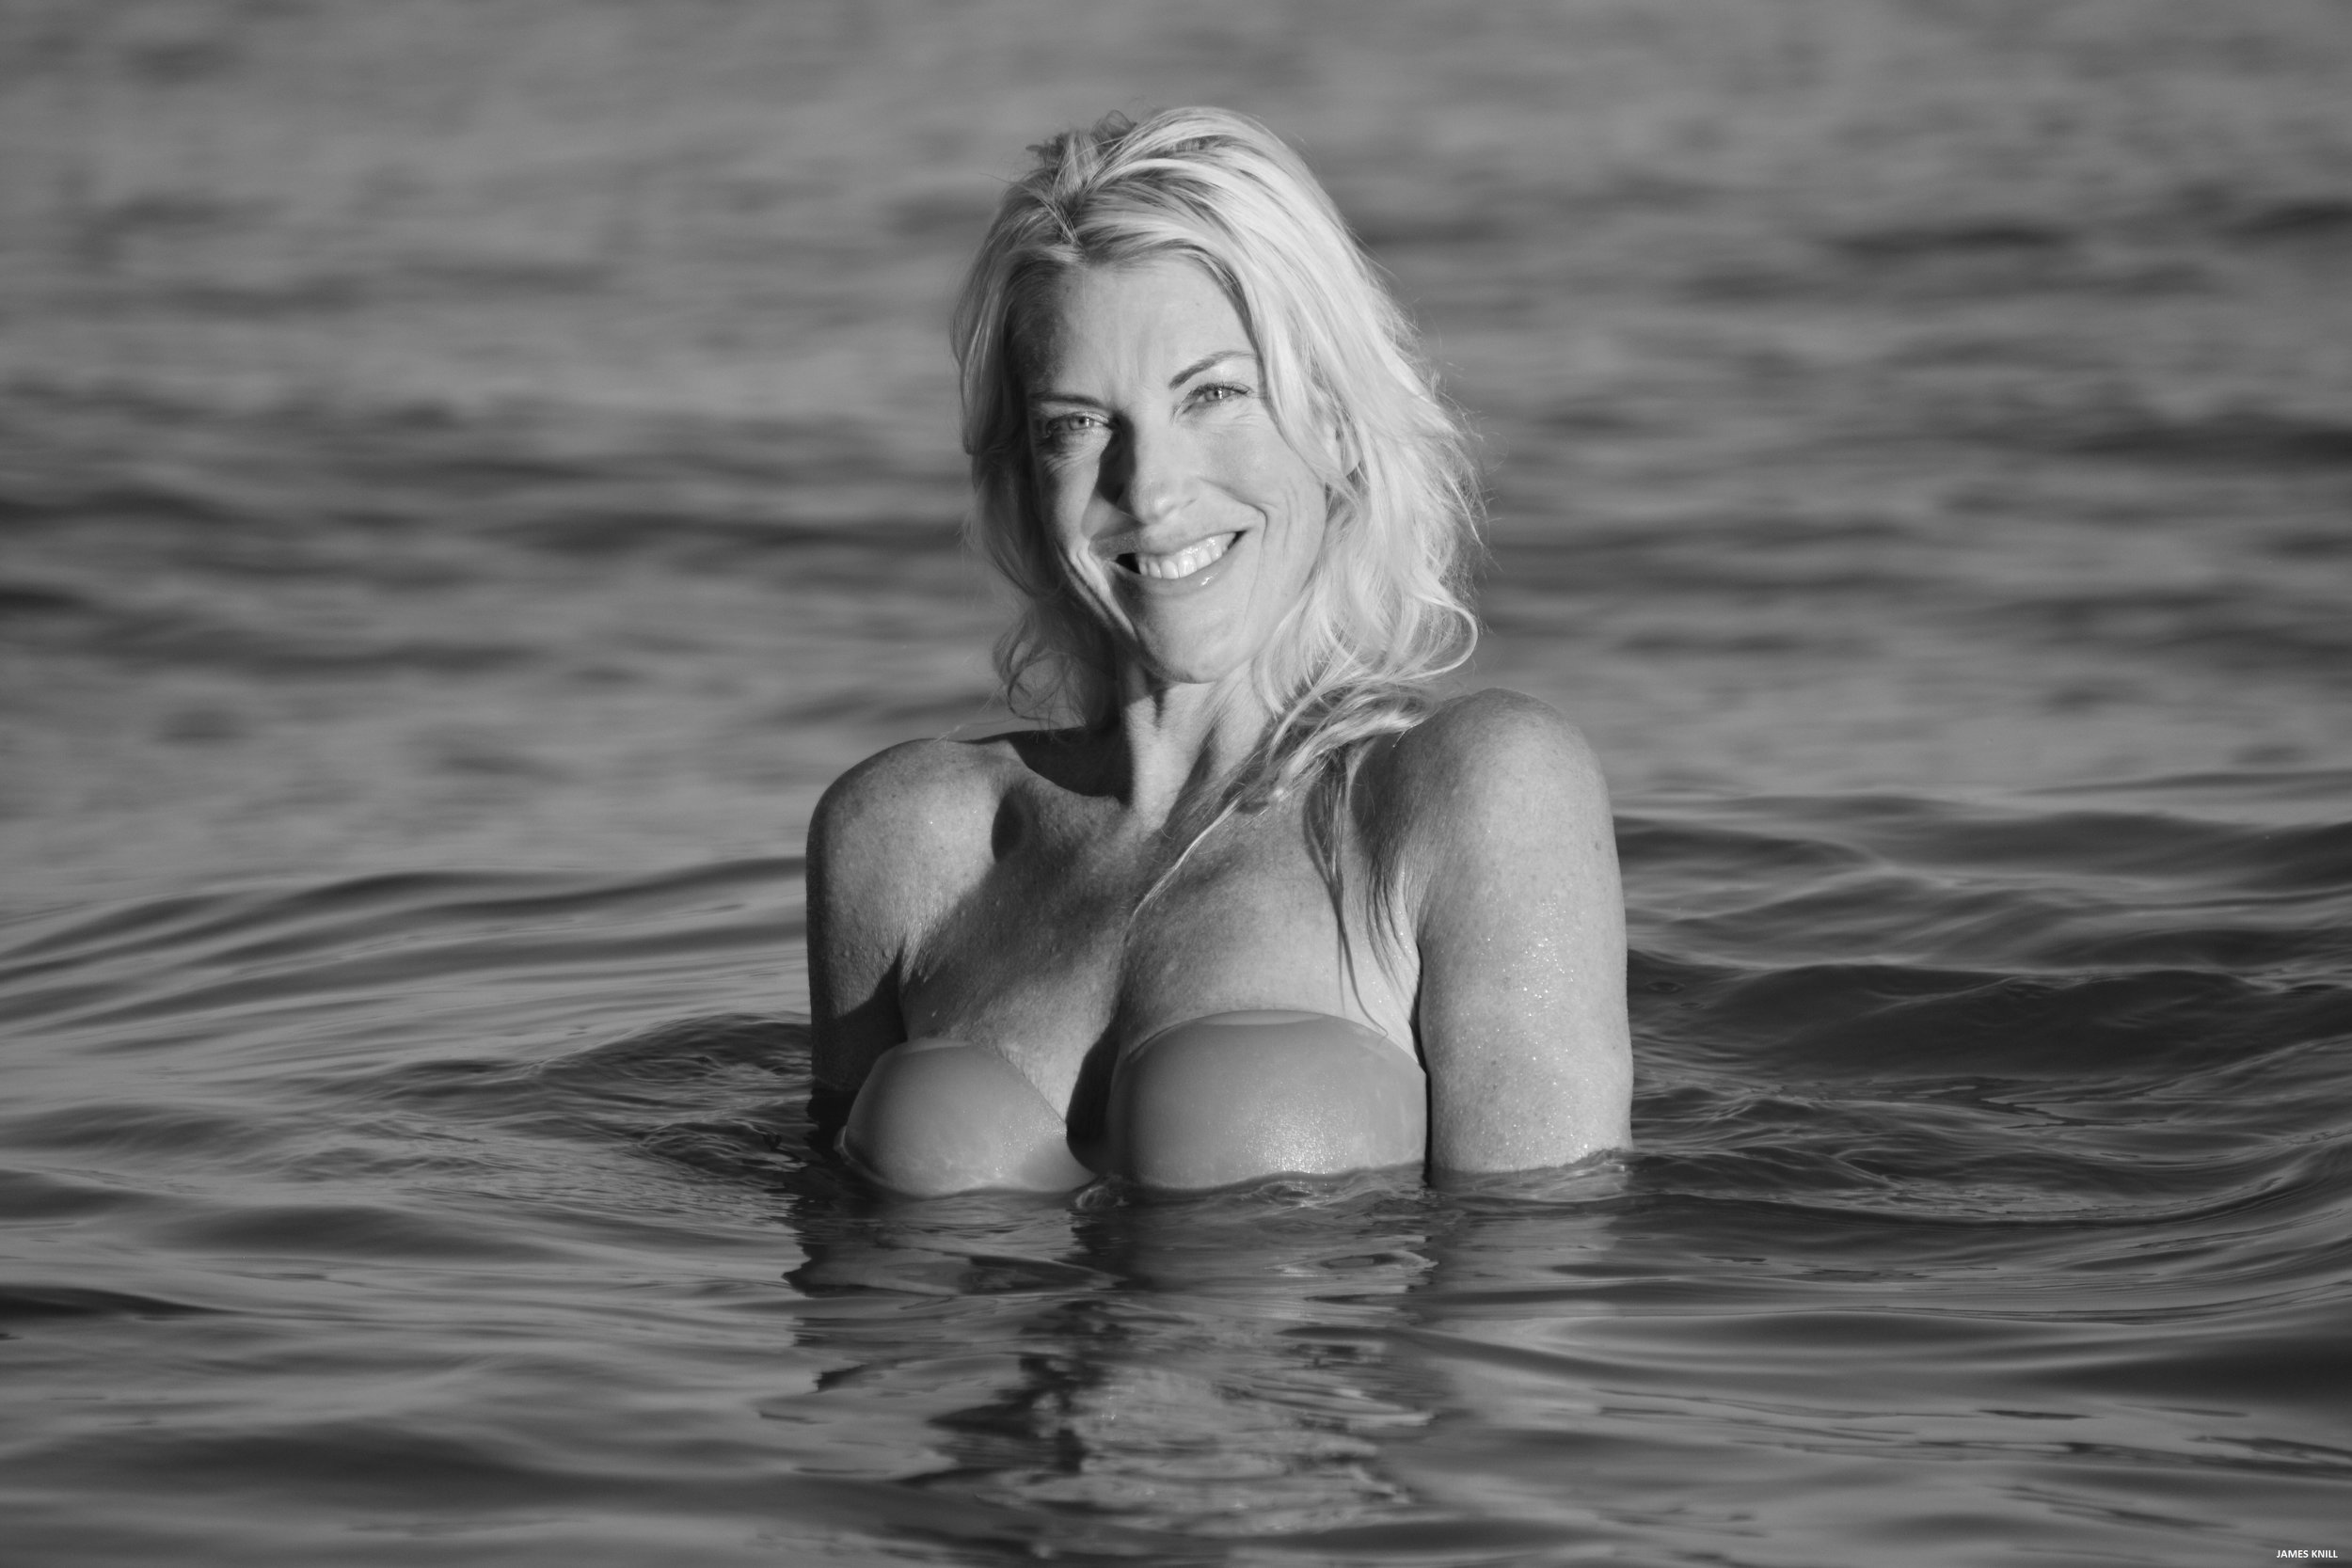 Black And White Portrait Photo Shoot In The Ocean. Photography By James Knill